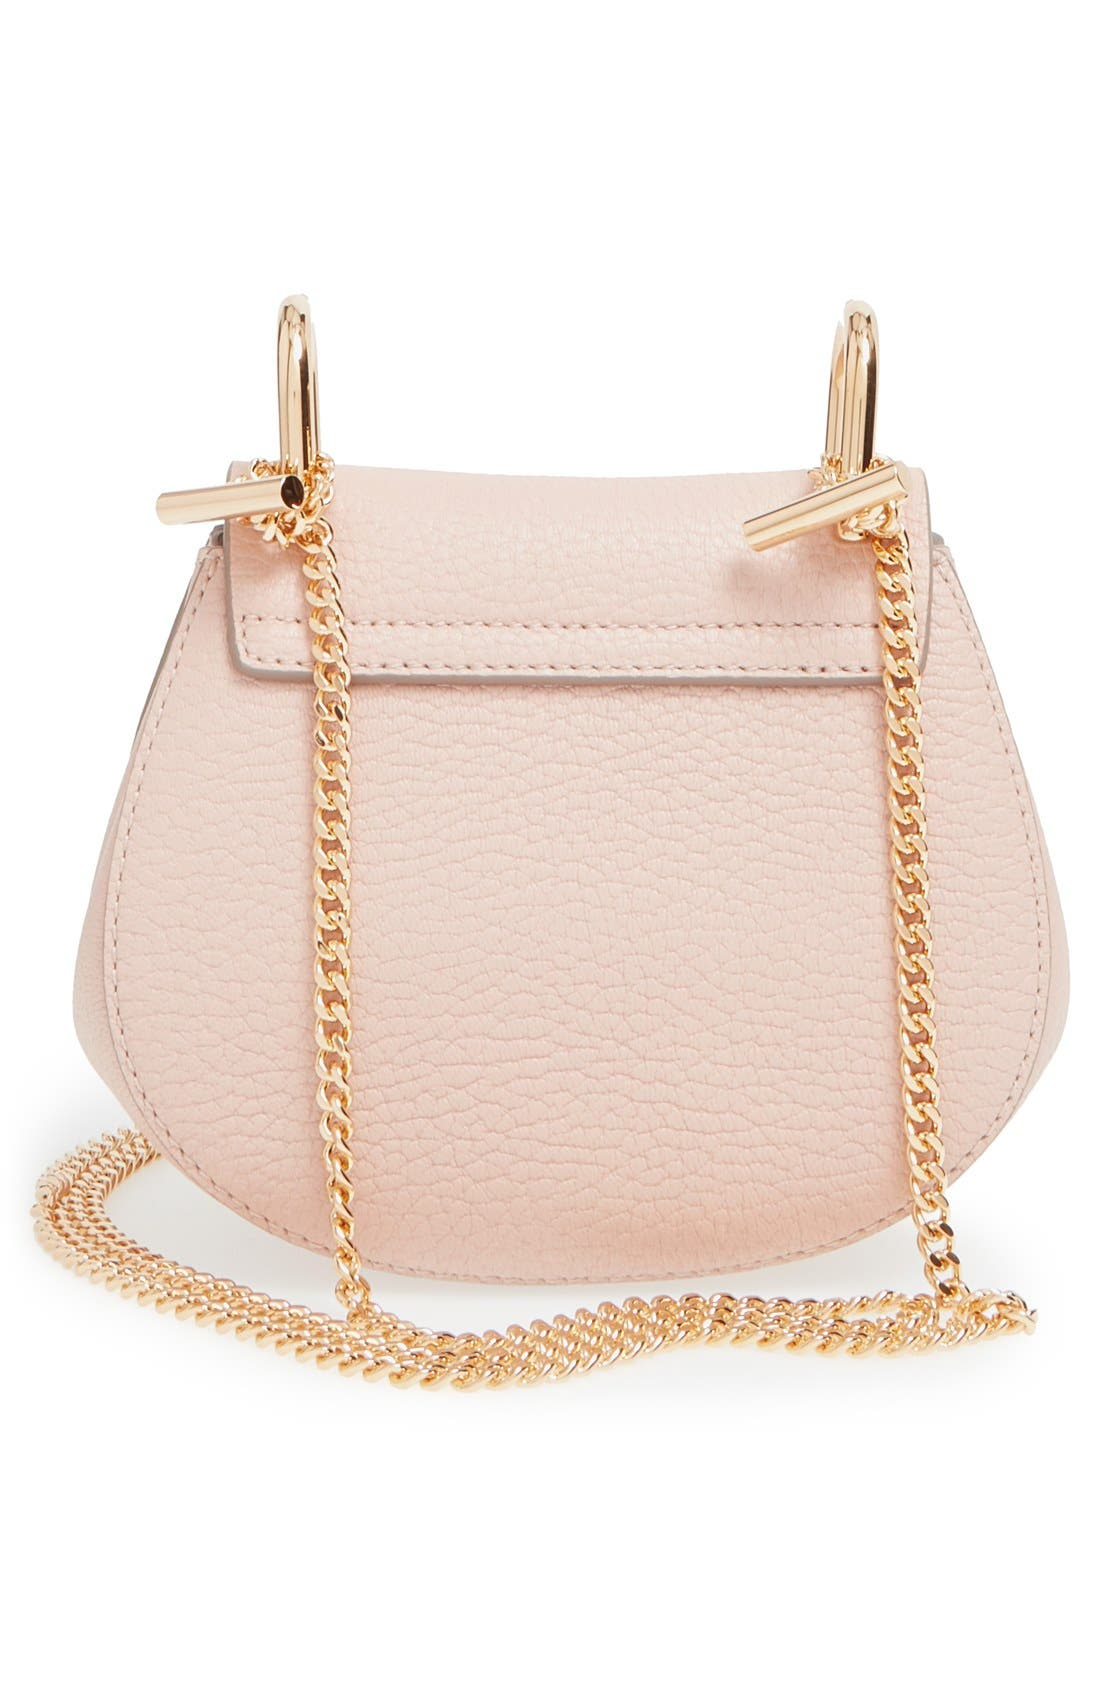 Alternate Image 3  - Chloé 'Nano Drew' Lambskin Leather Shoulder Bag